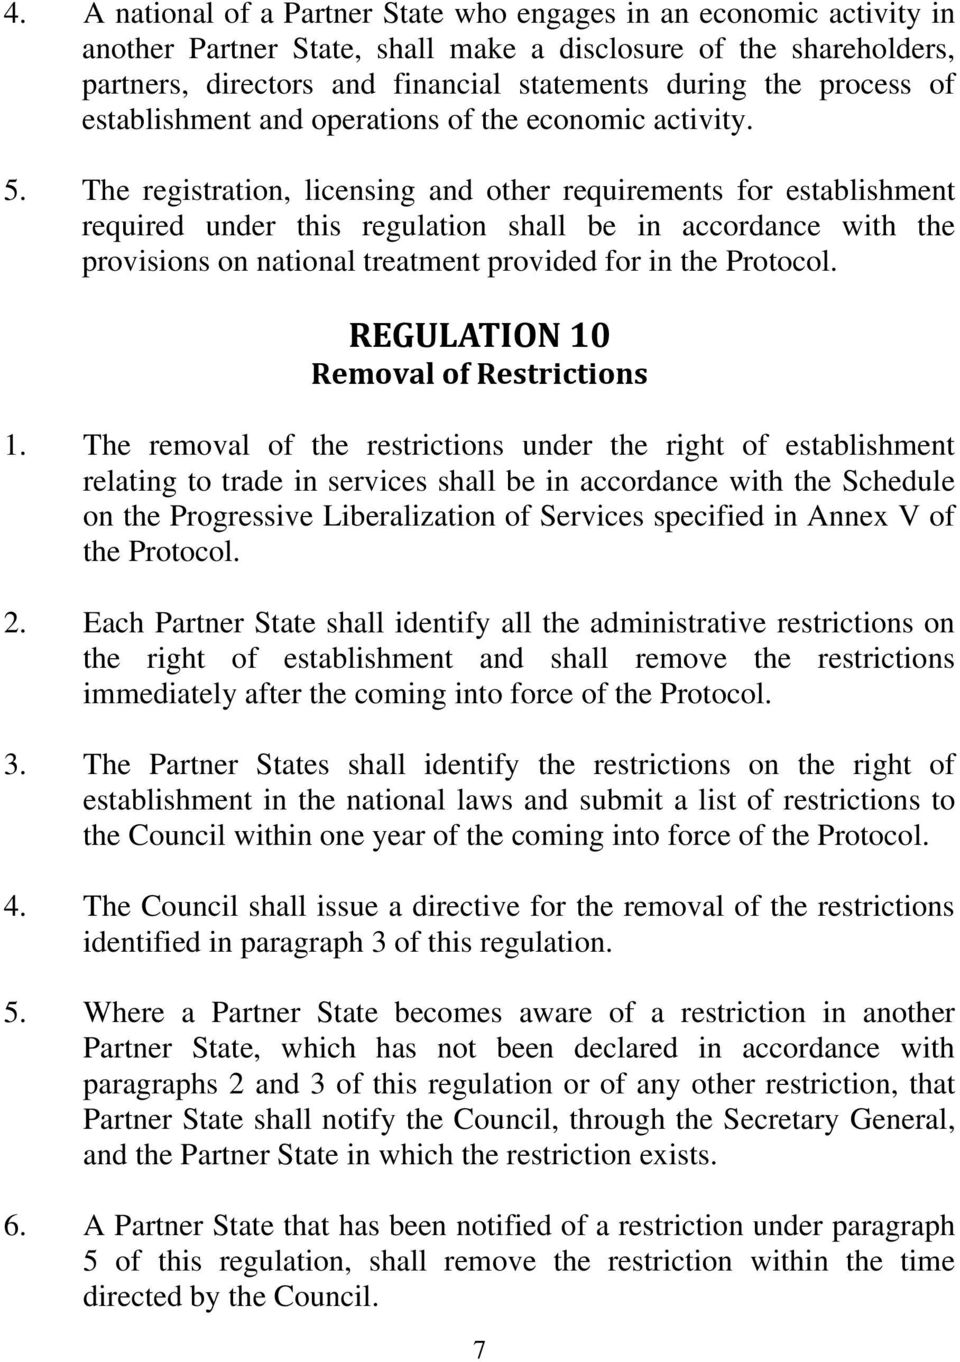 The registration, licensing and other requirements for establishment required under this regulation shall be in accordance with the provisions on national treatment provided for in the Protocol.